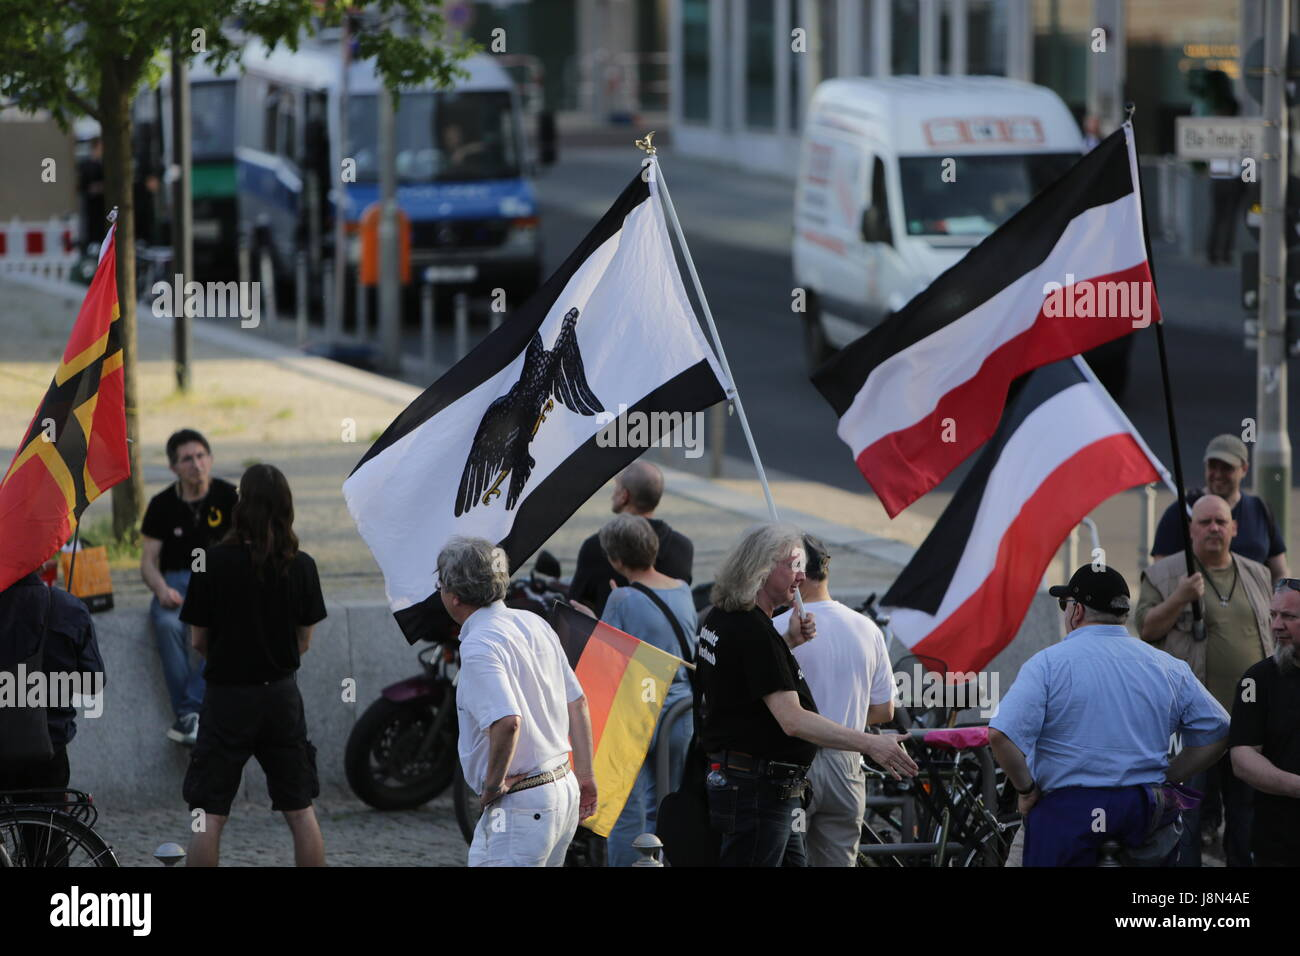 Protesters wave a Prussian flag and flags of the German Reich until 1918. A handful of right-wing protesters came - Stock Image